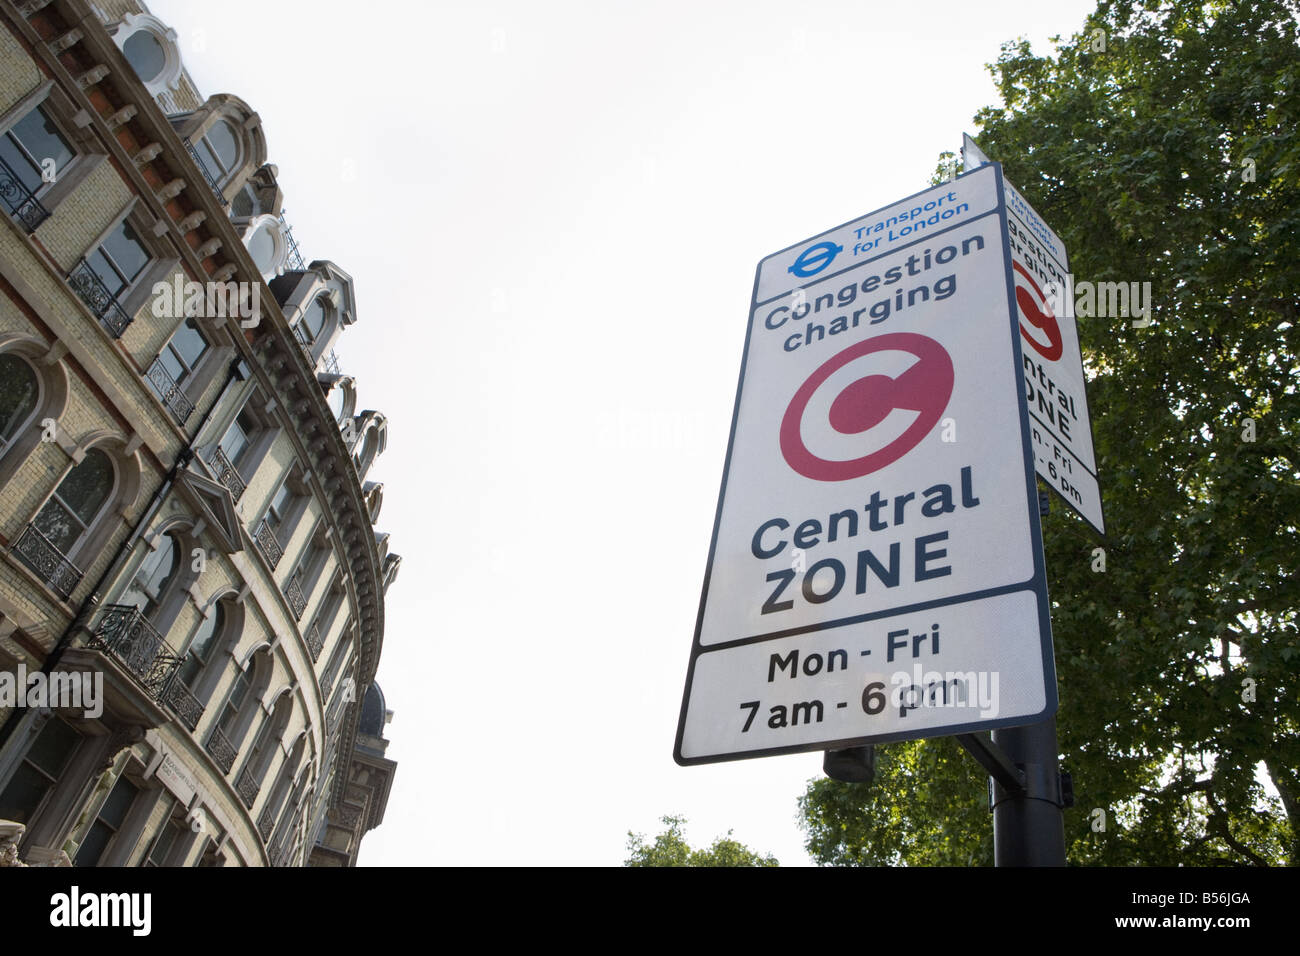 Congestion charge sign - Stock Image